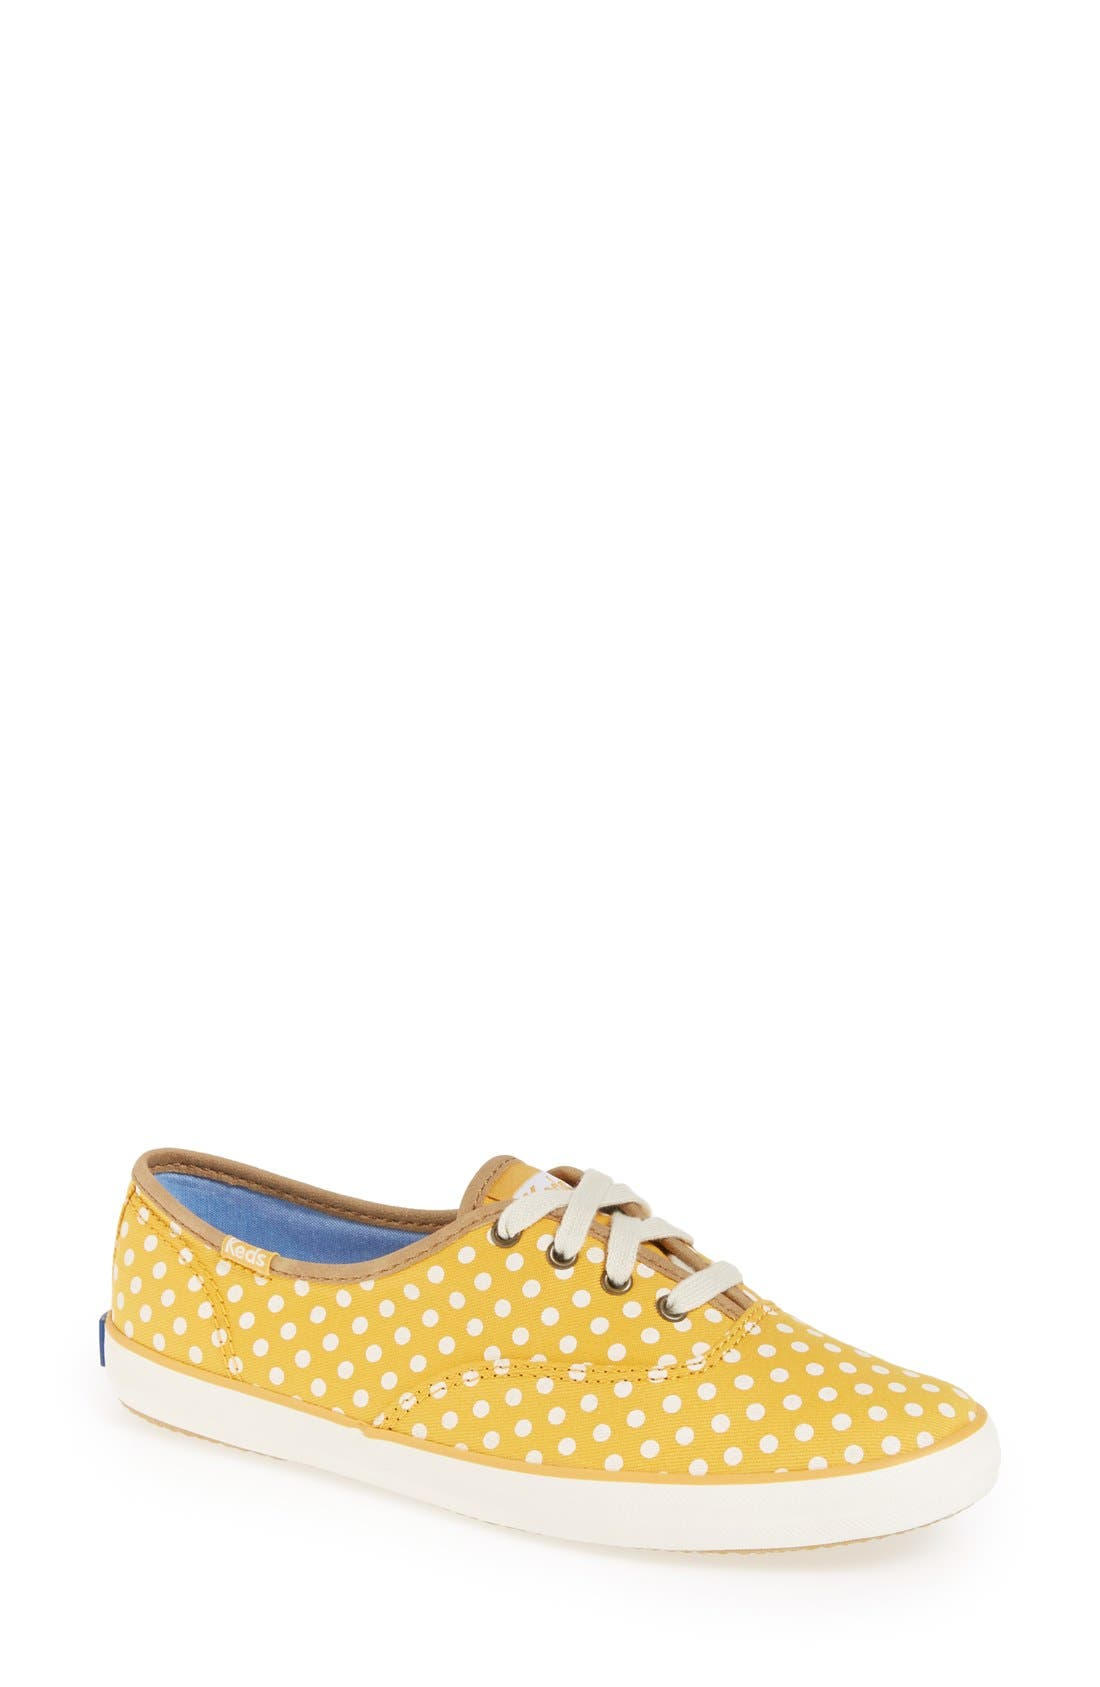 Alternate Image 1 Selected - Keds® 'Champion - Dot' Sneaker (Women)